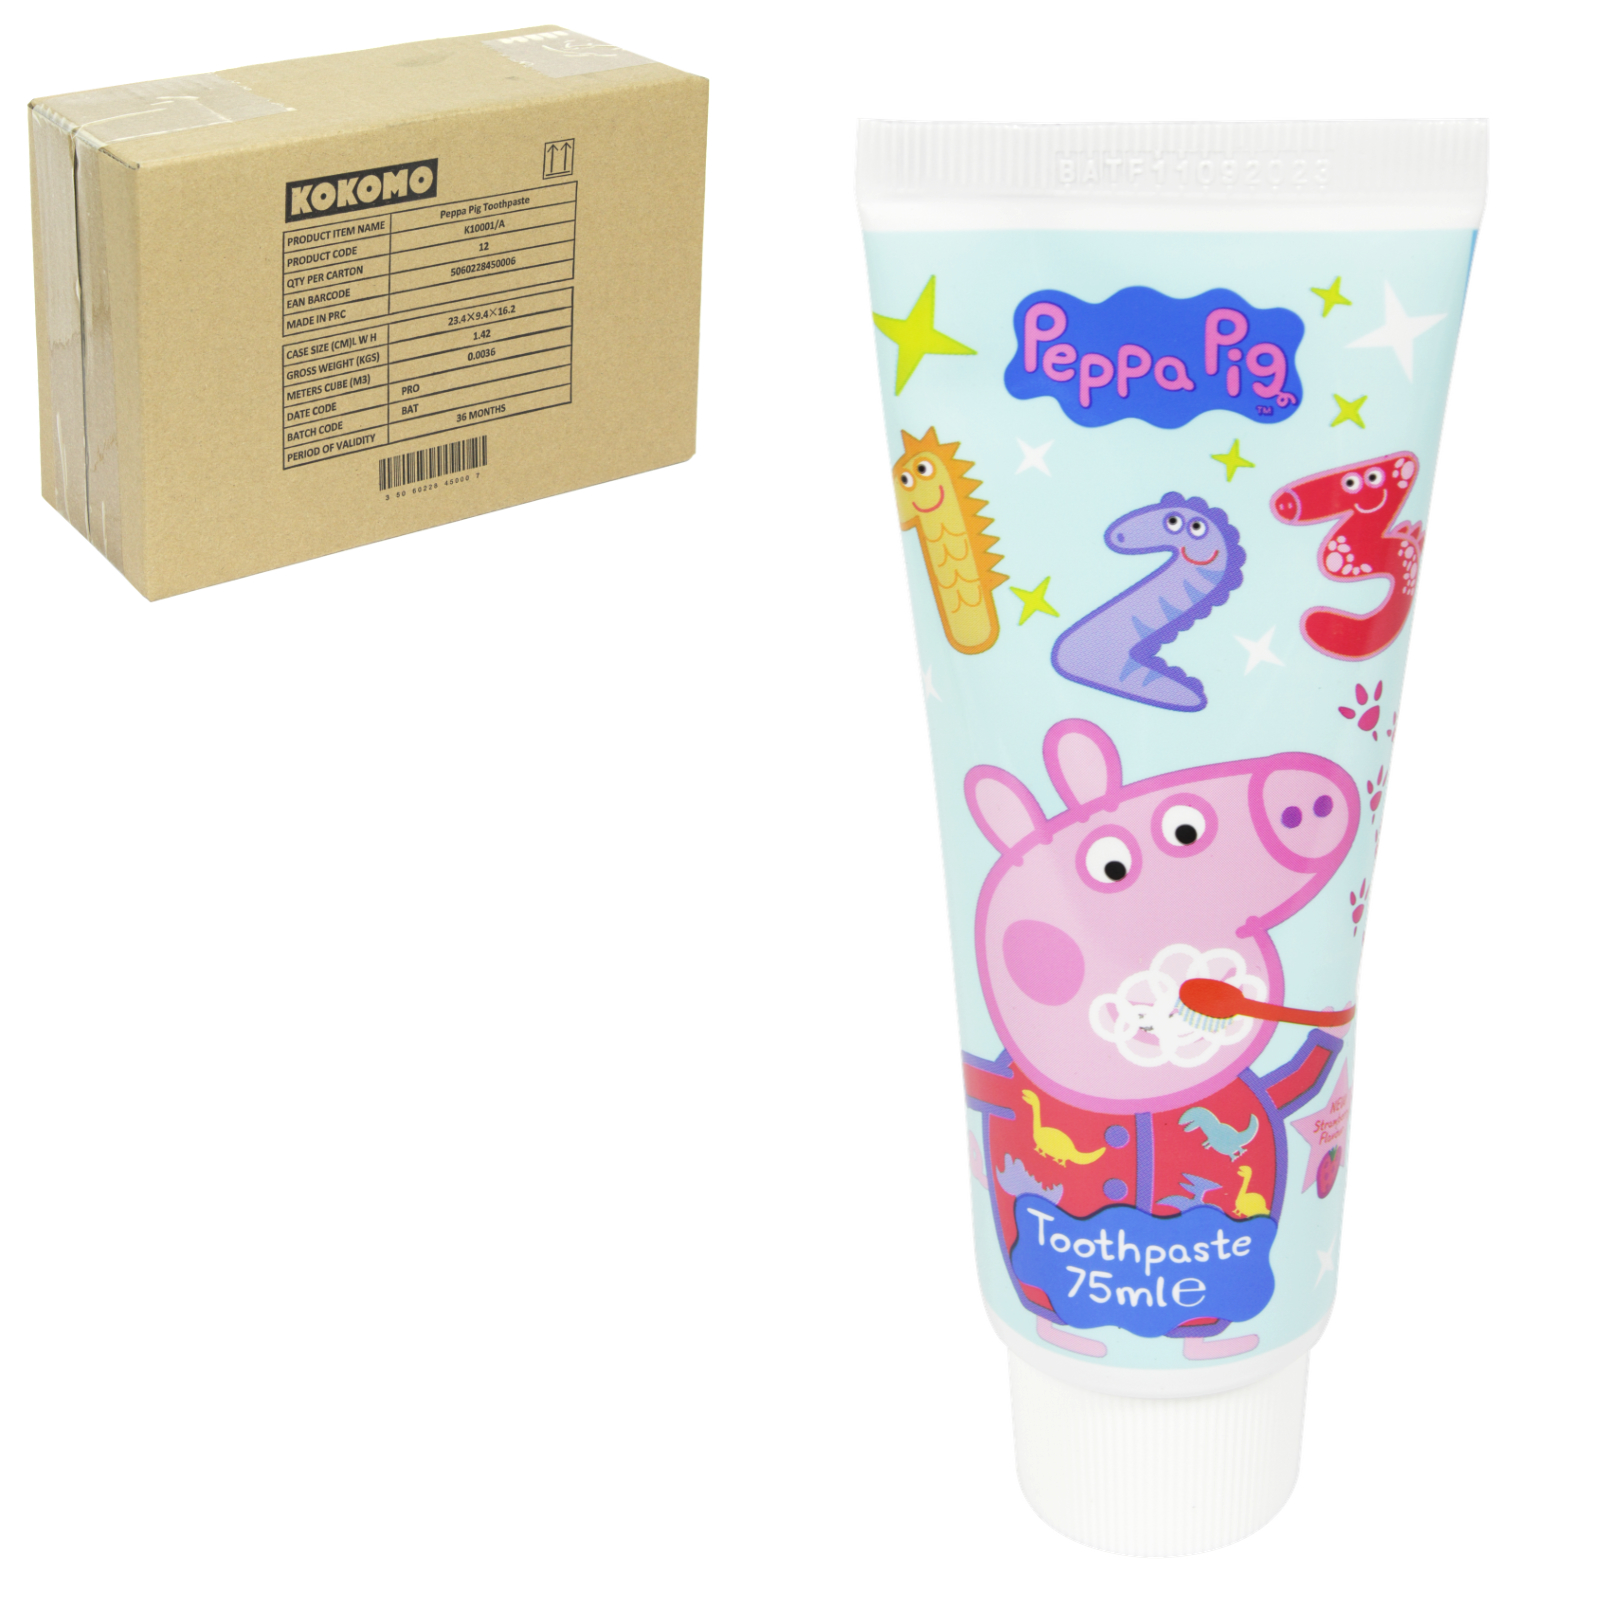 PEPPA PIG TOOTHPASTE 75ML MILD MINT X12